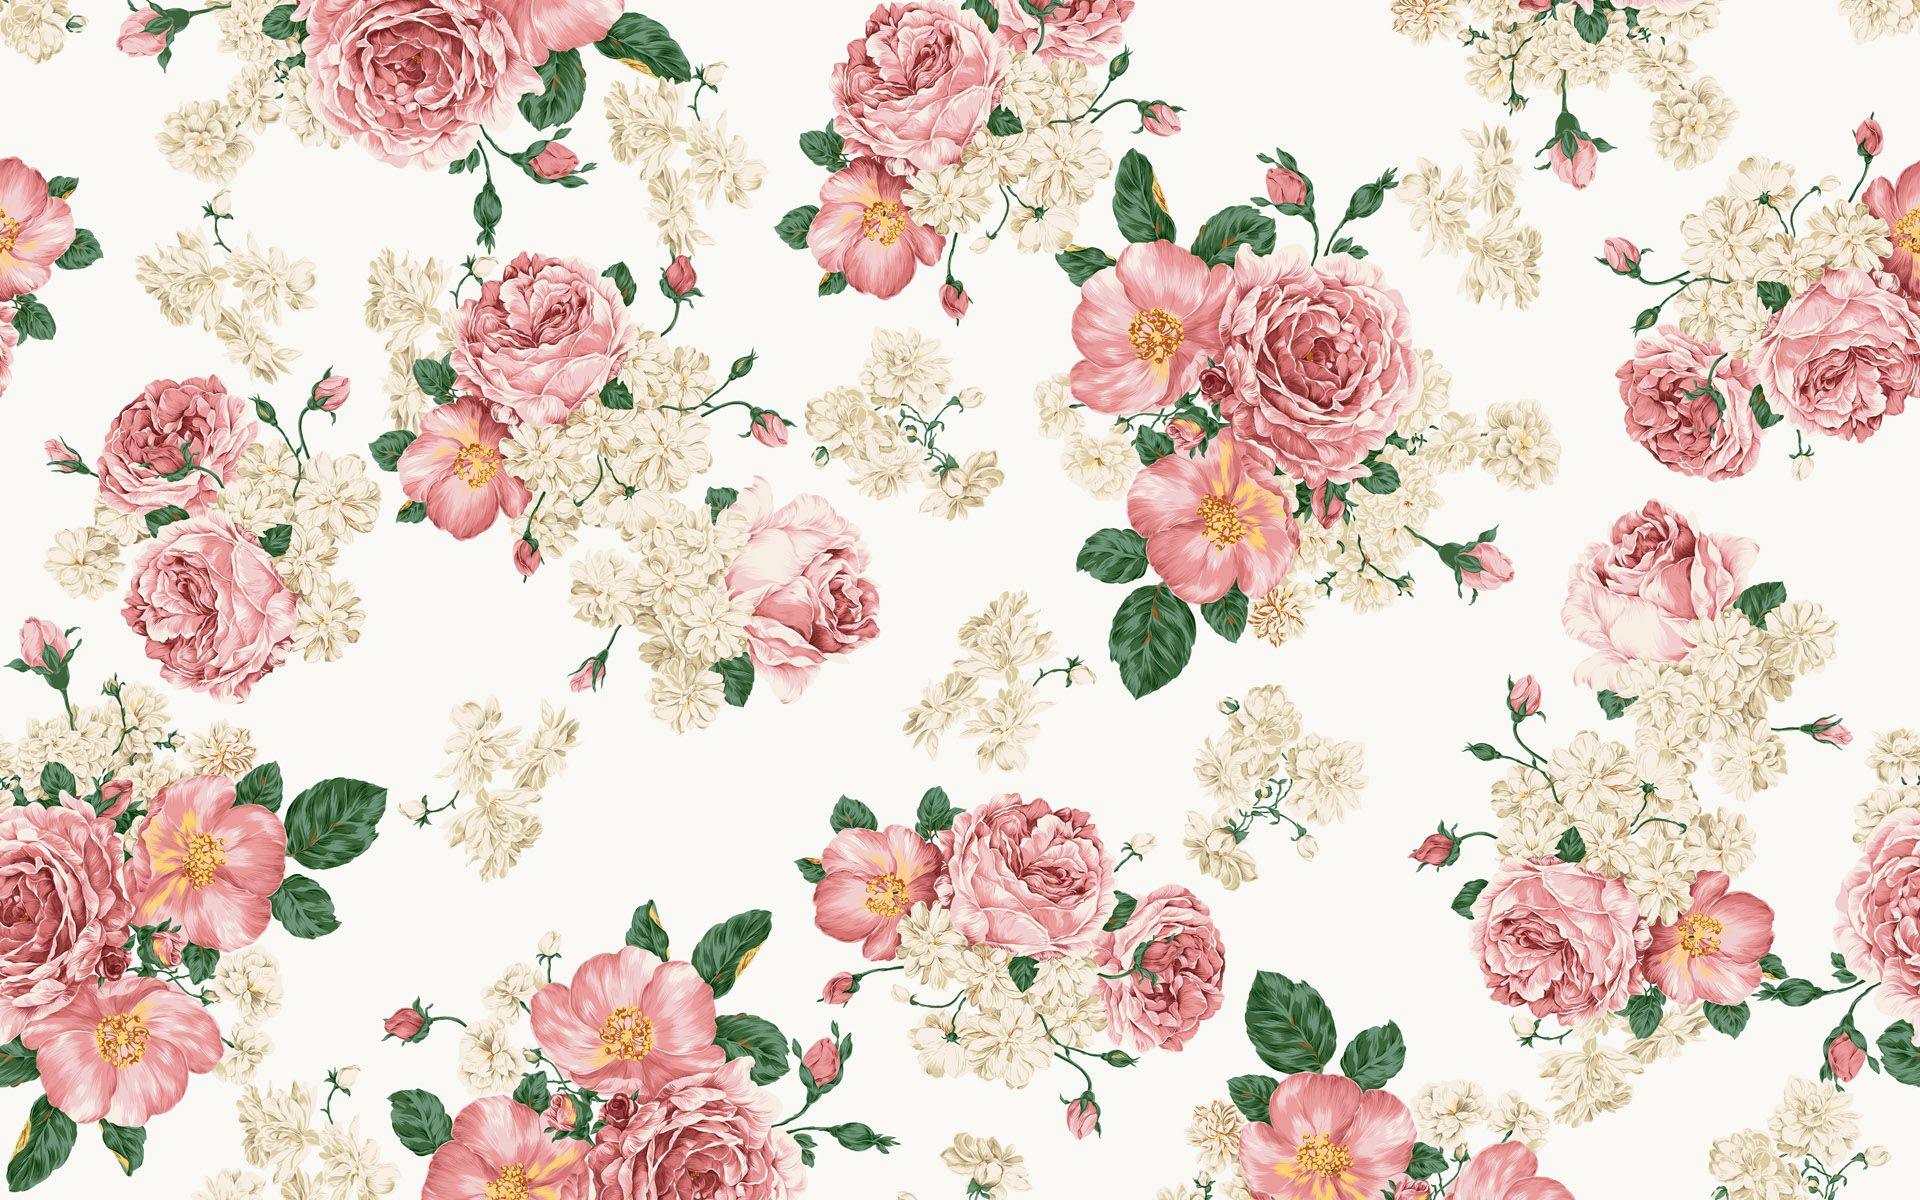 Flower Pattern Design Wallpaper High Resolution With Hd Desktop 1920x1200 Px 729 58 Kb Cetakan Bunga Wallpaper Bunga Bunga